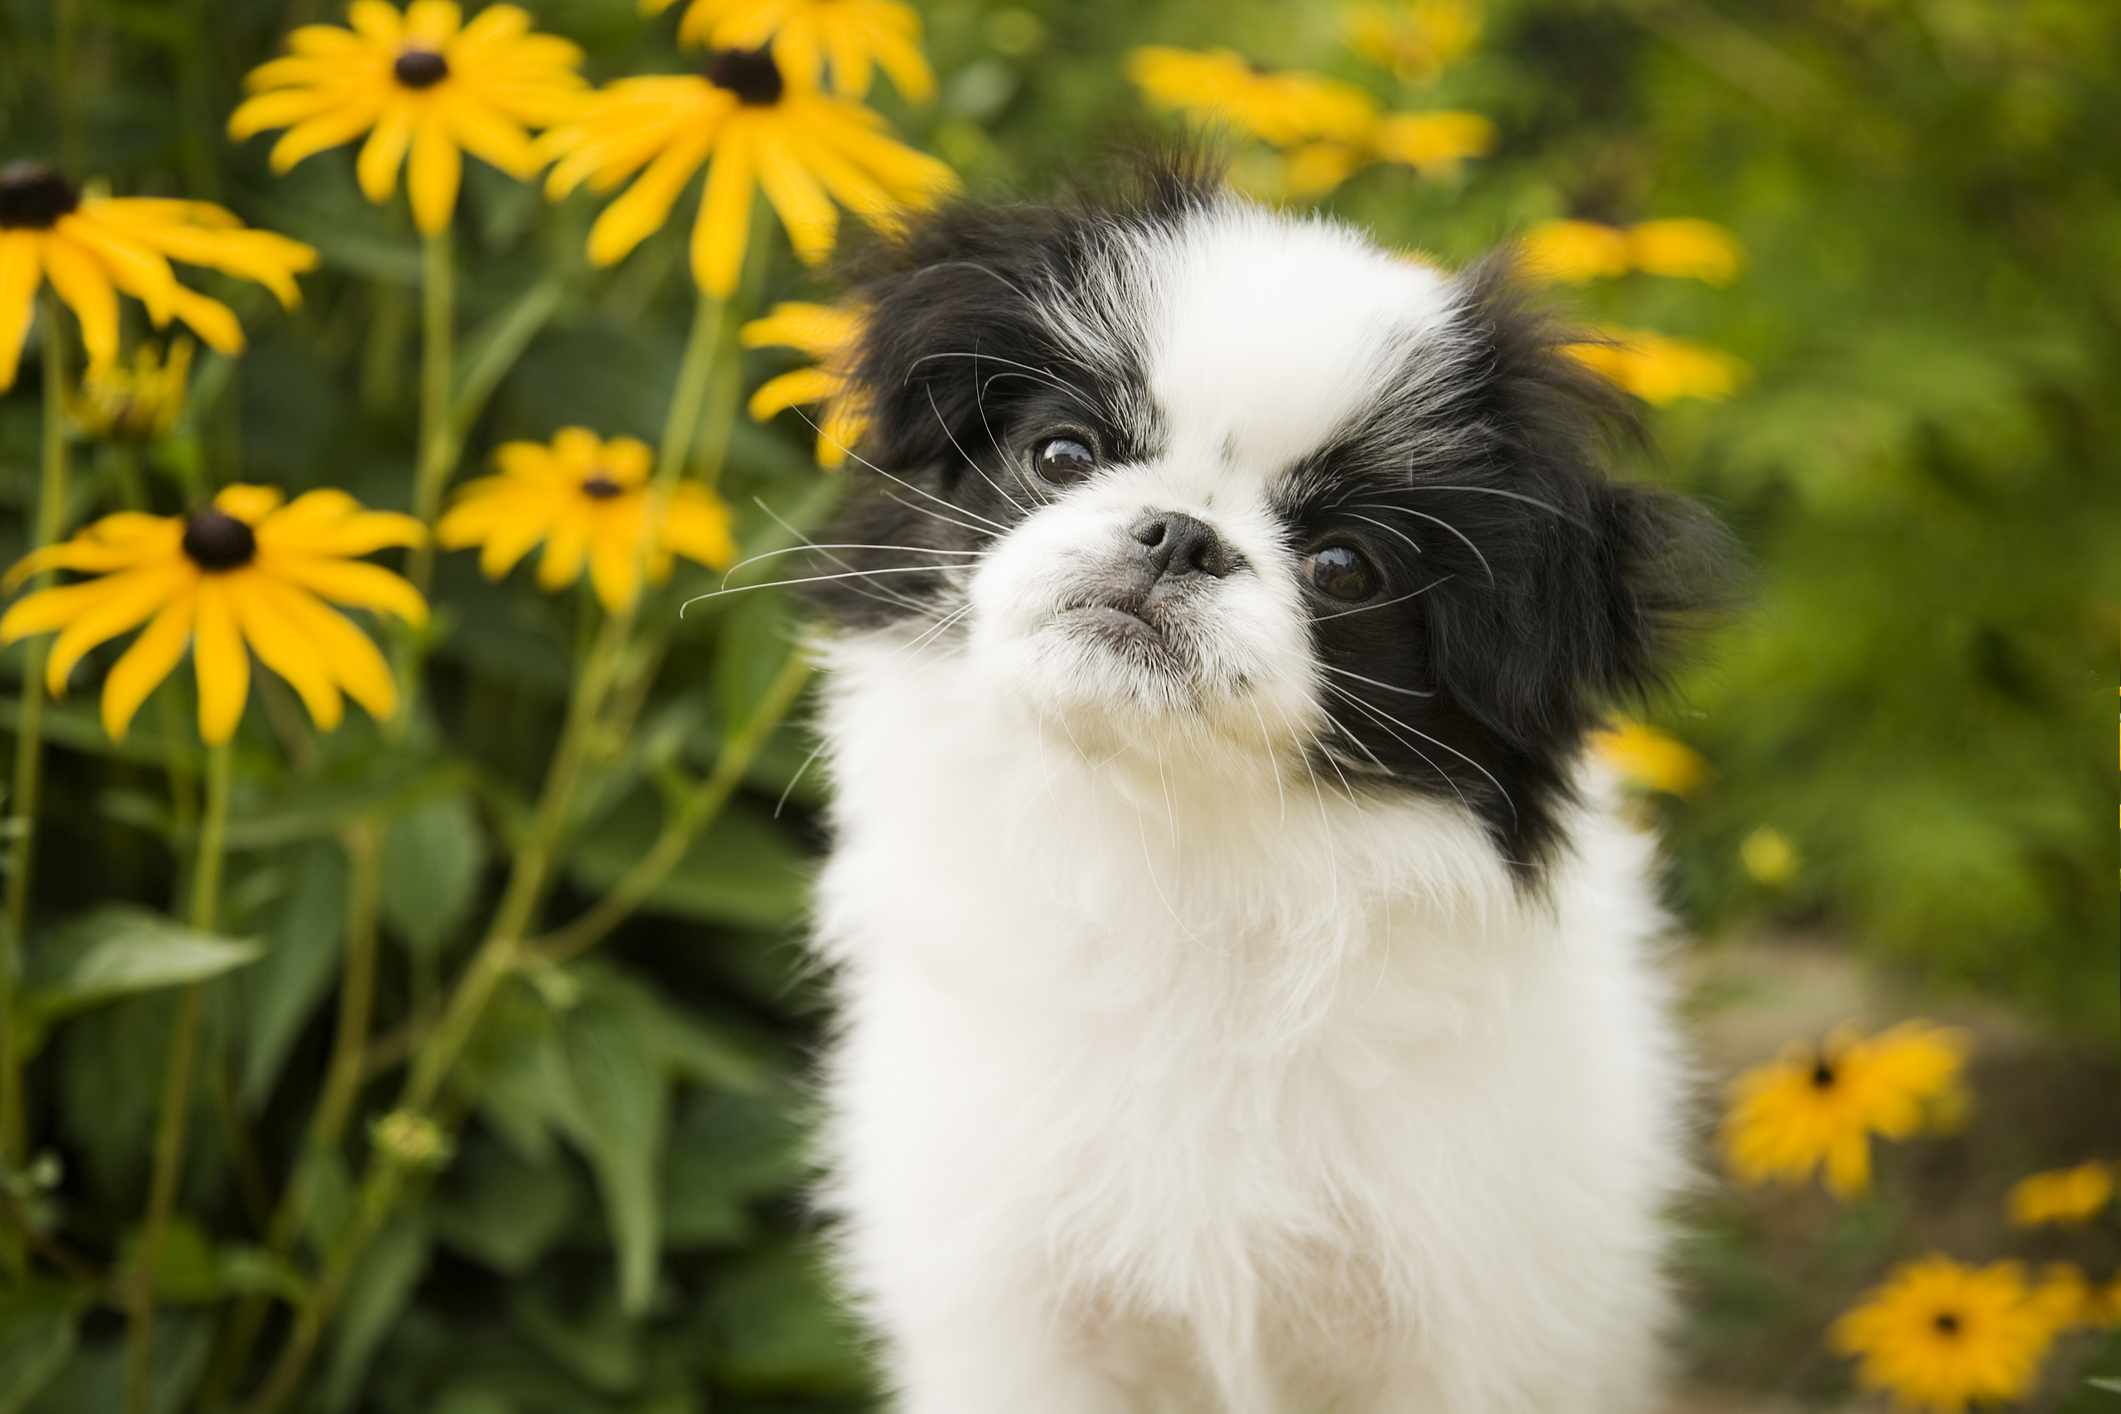 Japanese Chin puppy in garden by yellow daisies.